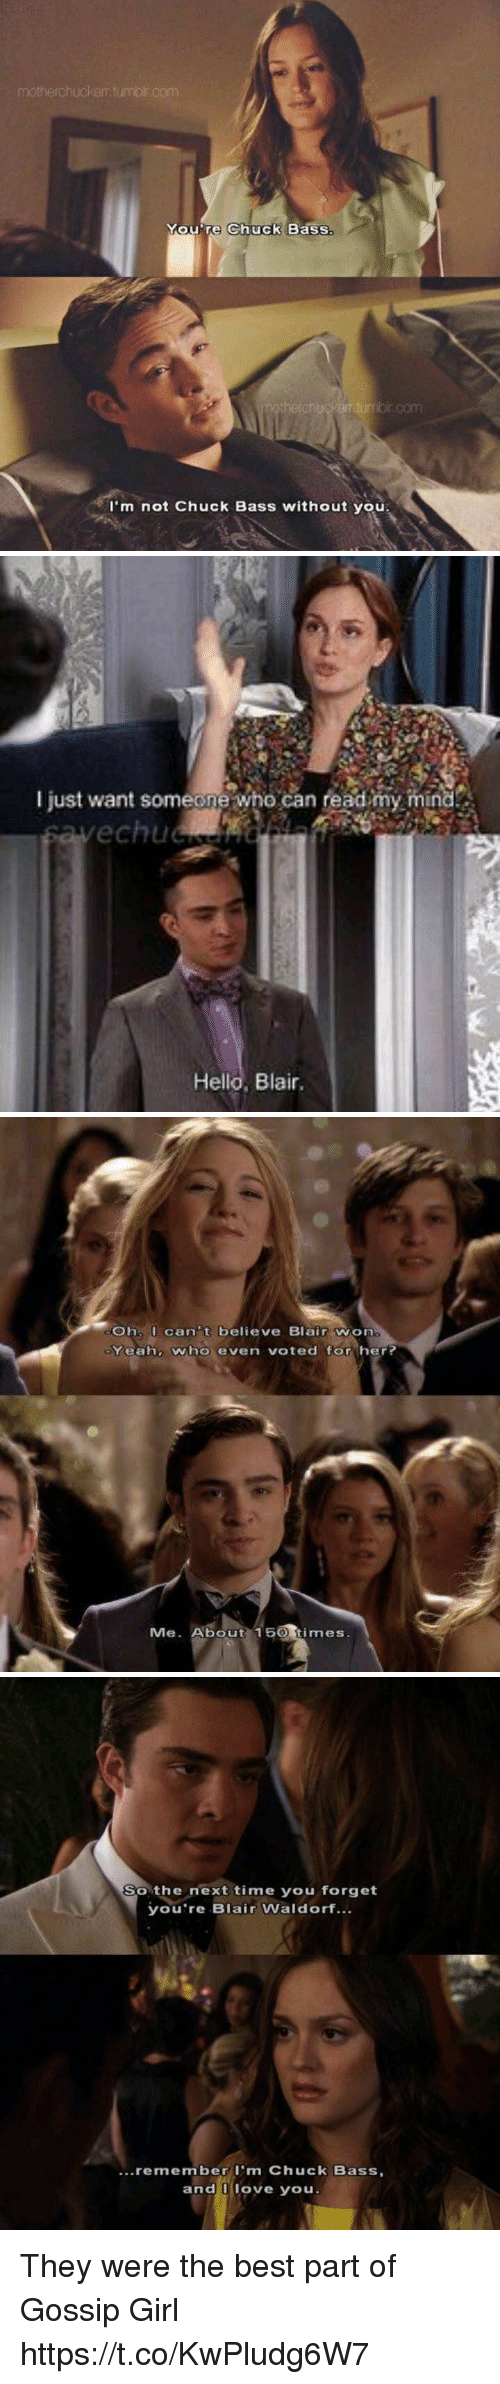 Hello, Love, and Memes: motherchucker tumbr com  You're Chuck BaSS.  com  I'm not Chuck Bass without you   I just want someone who can read my mind  echuc  Hello, Blair,   Oh can't believe Blair Won  Yeahz who even voted for her?  Me. About 150 times   So the next time you forget  you're Blair Waldorf...  ...remember m Chuck Bass,  and U love you. They were the best part of Gossip Girl https://t.co/KwPludg6W7